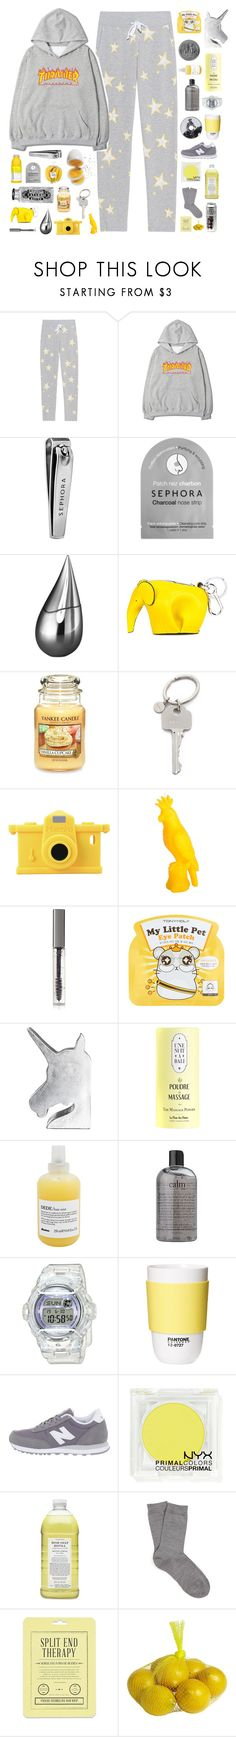 """""""♡ BUT KEEP iT DOWN ON THE LOW KEY"""" by nervous-touch ❤ liked on Polyvore featuring Juvia, Sephora Collection, La Prairie, Loewe, Yankee Candle, Paul Smith, Moschino, Sunnylife, BBrowBar and Tony Moly"""